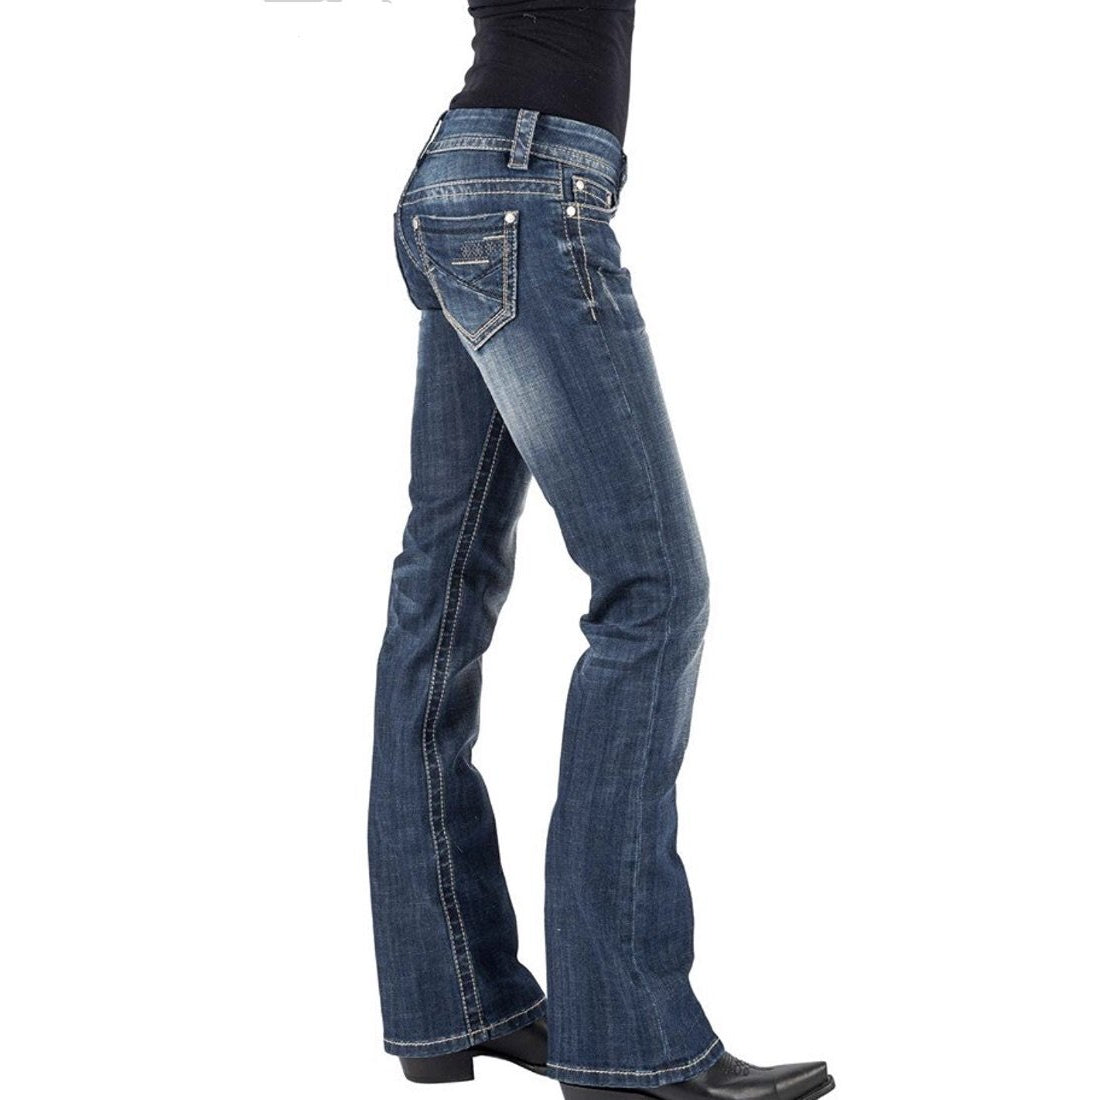 Stetson Western Jeans. Women's Slim Denim Hollywood Boot cut - All Blinged Out/Calamity's